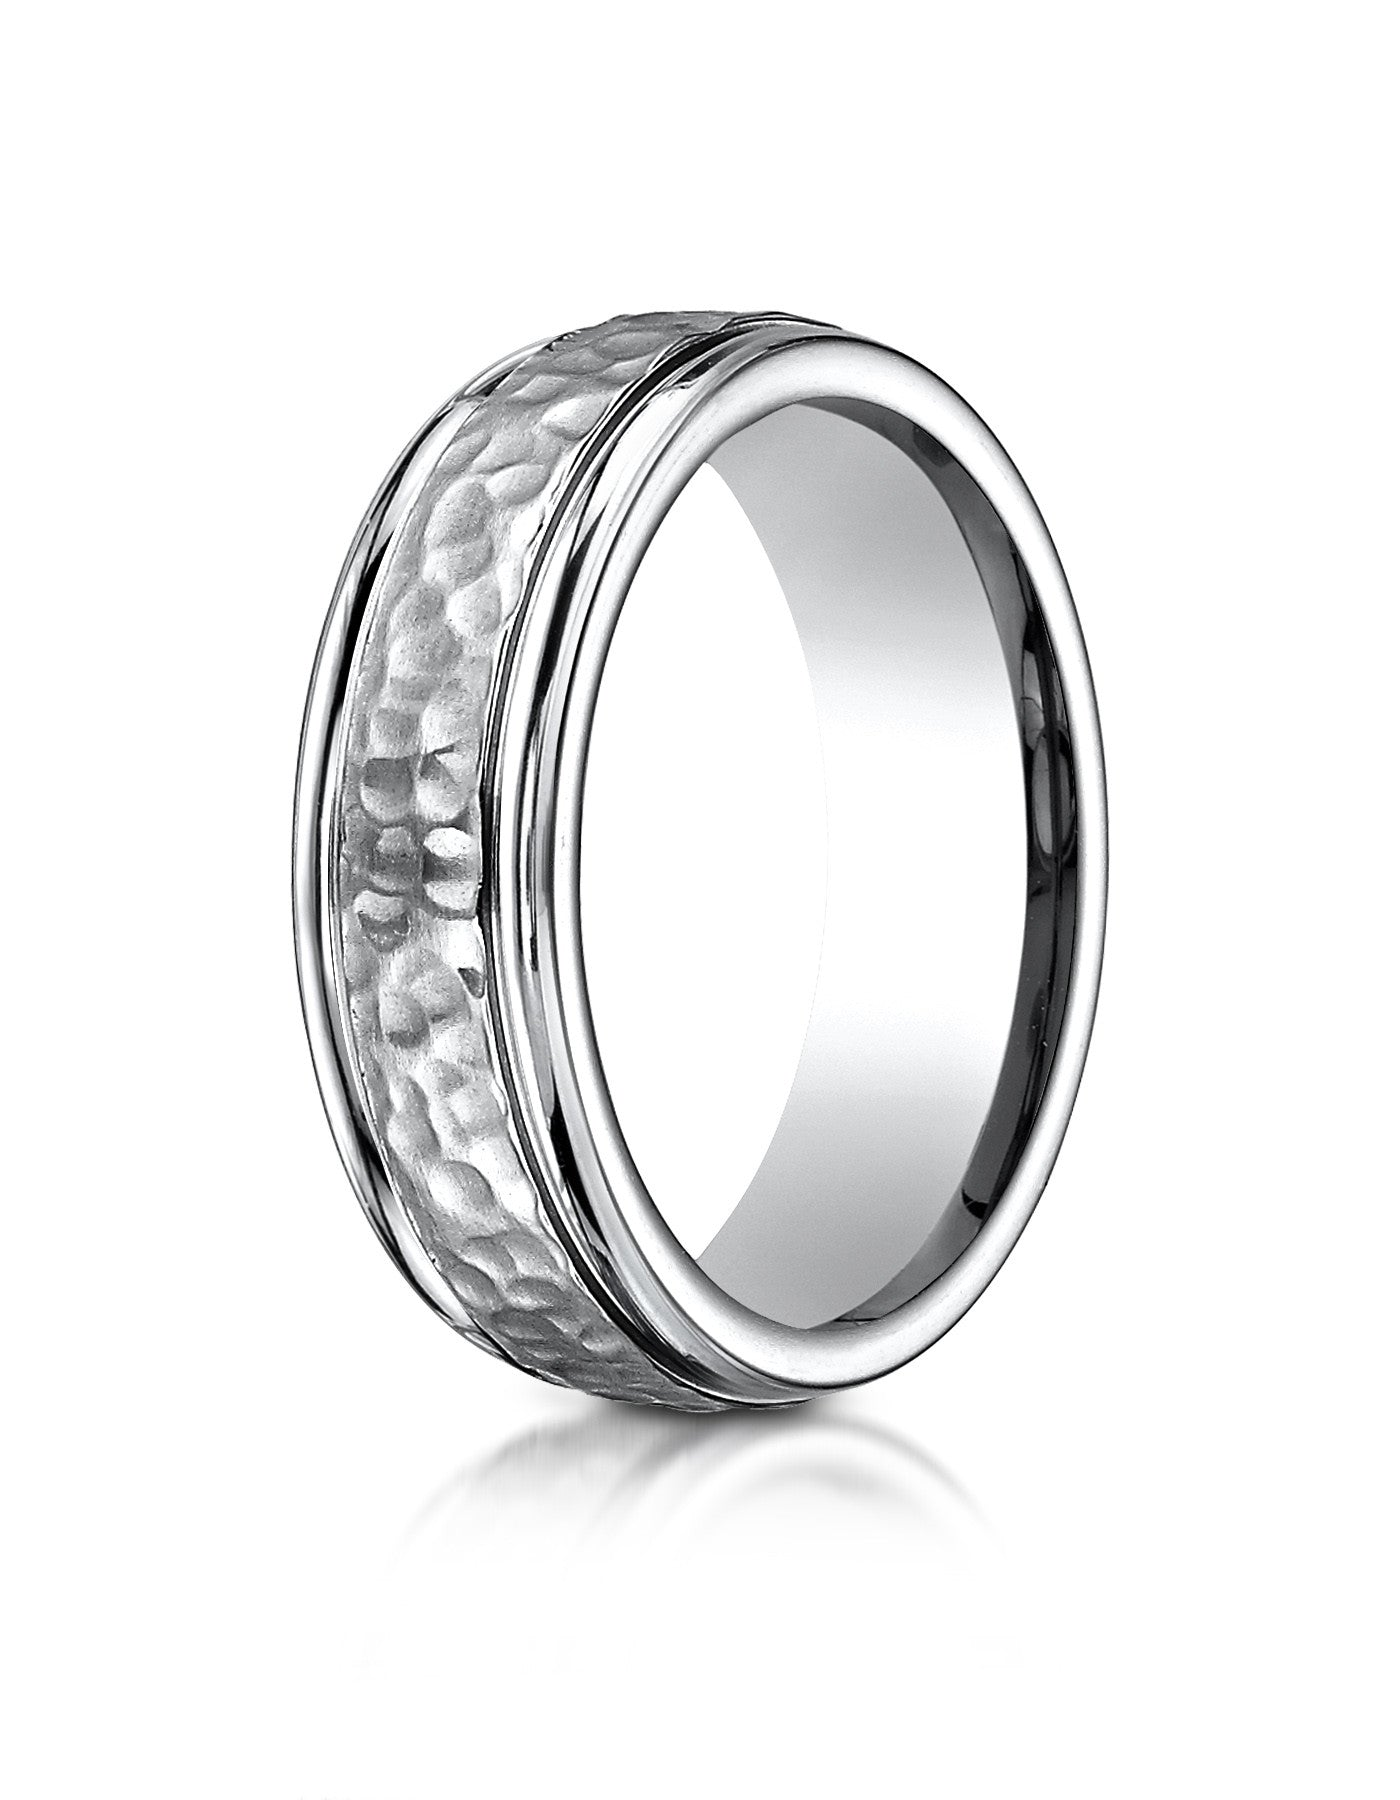 caracas hammered finished titanium wedding band for men by benchmark mens titanium wedding bands CARACAS Hammered Finished Titanium Wedding Band for Men